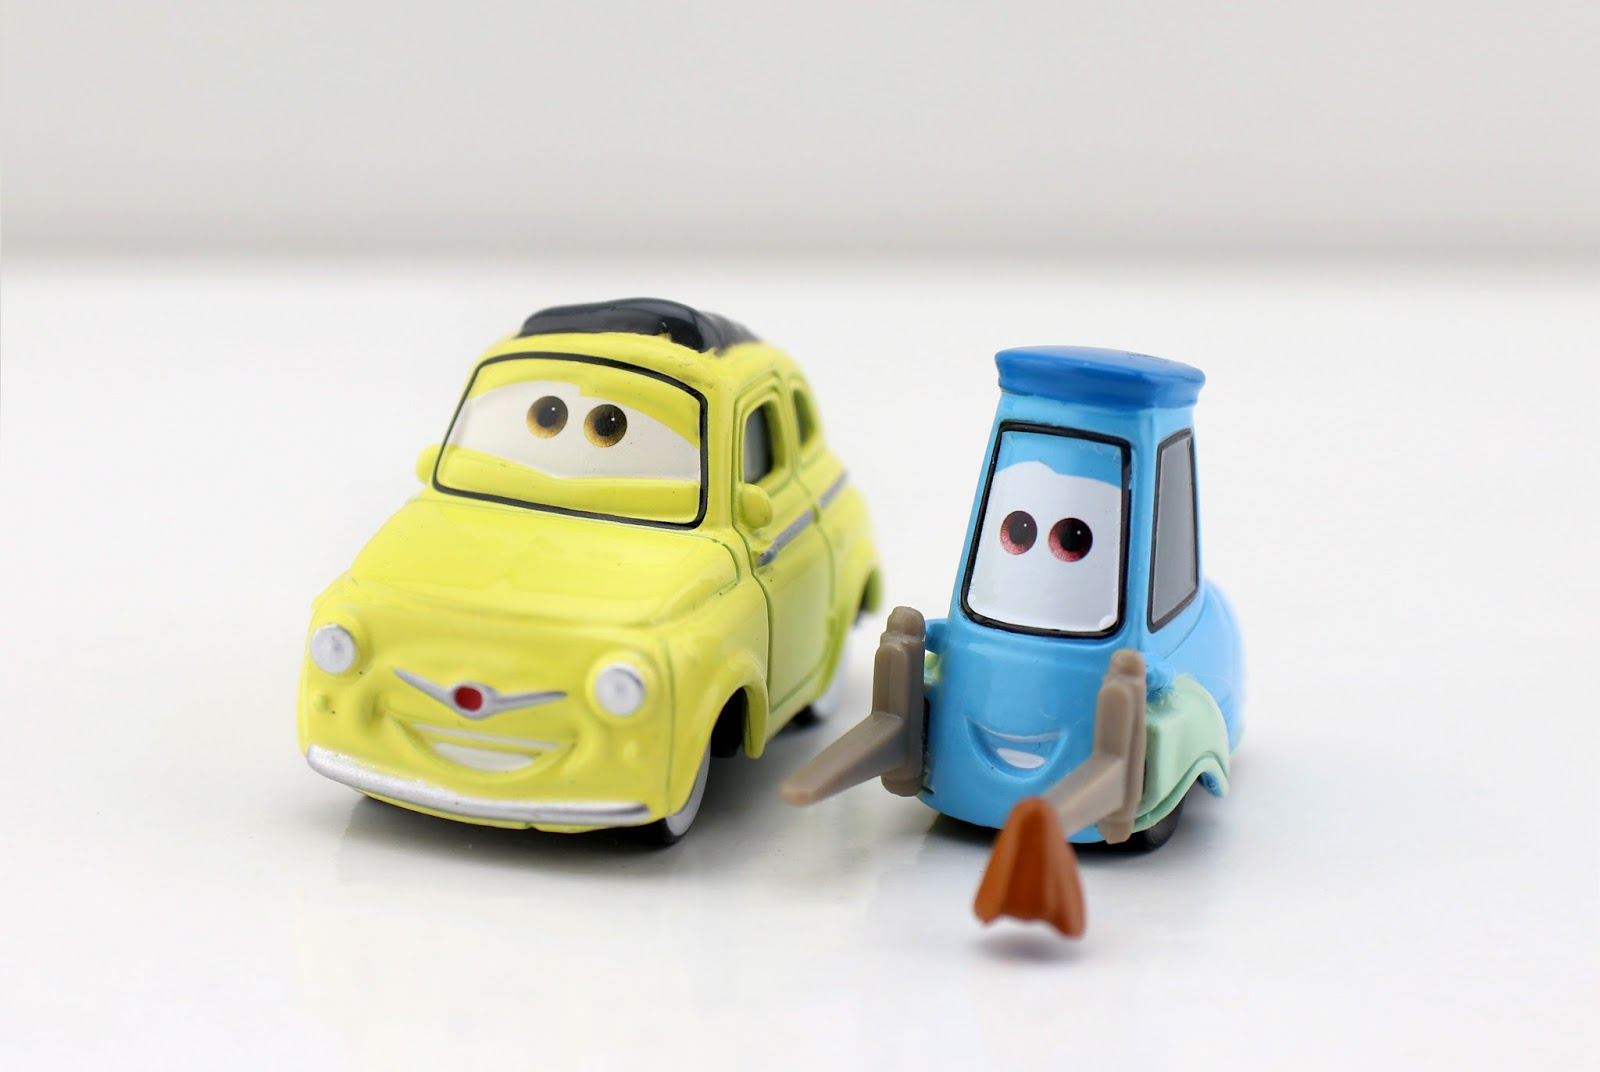 Cars 3: Lightning McQueen as Chester Whipplefilter, Luigi & Guido with Cloth (3-Pack)